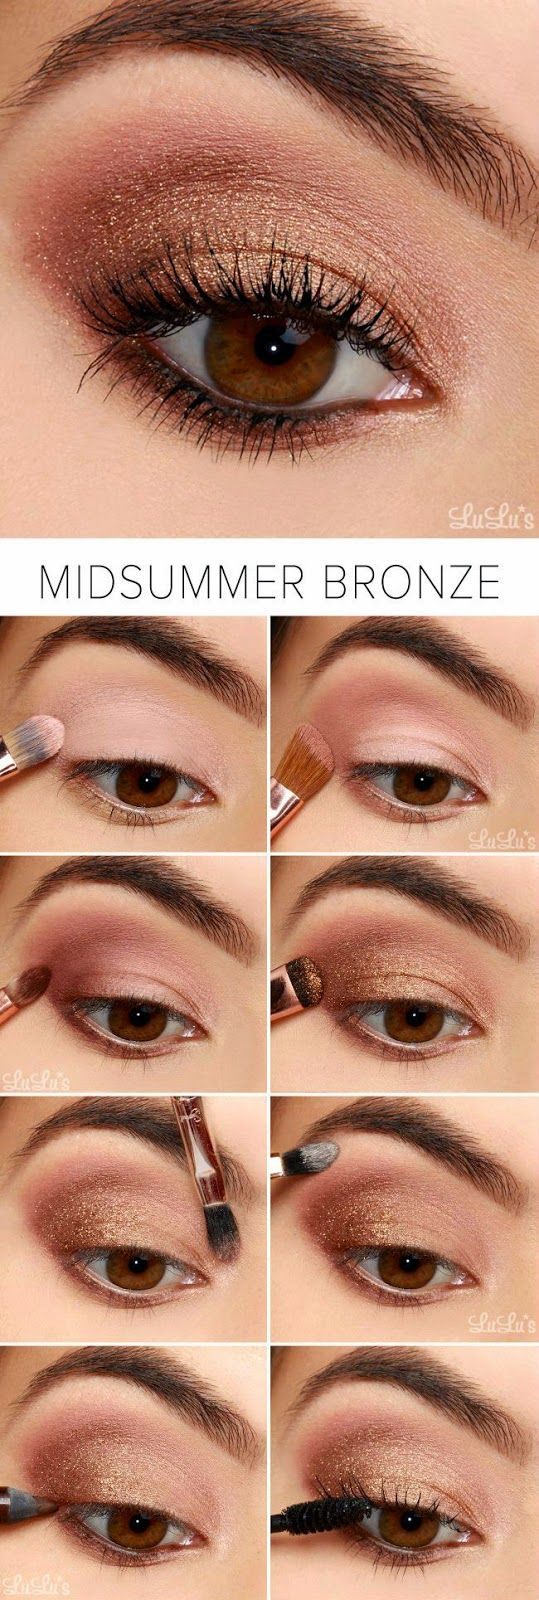 Latest Summer Makeup Ideas & Beauty Tips Cool Looks 2016-2017 (4)